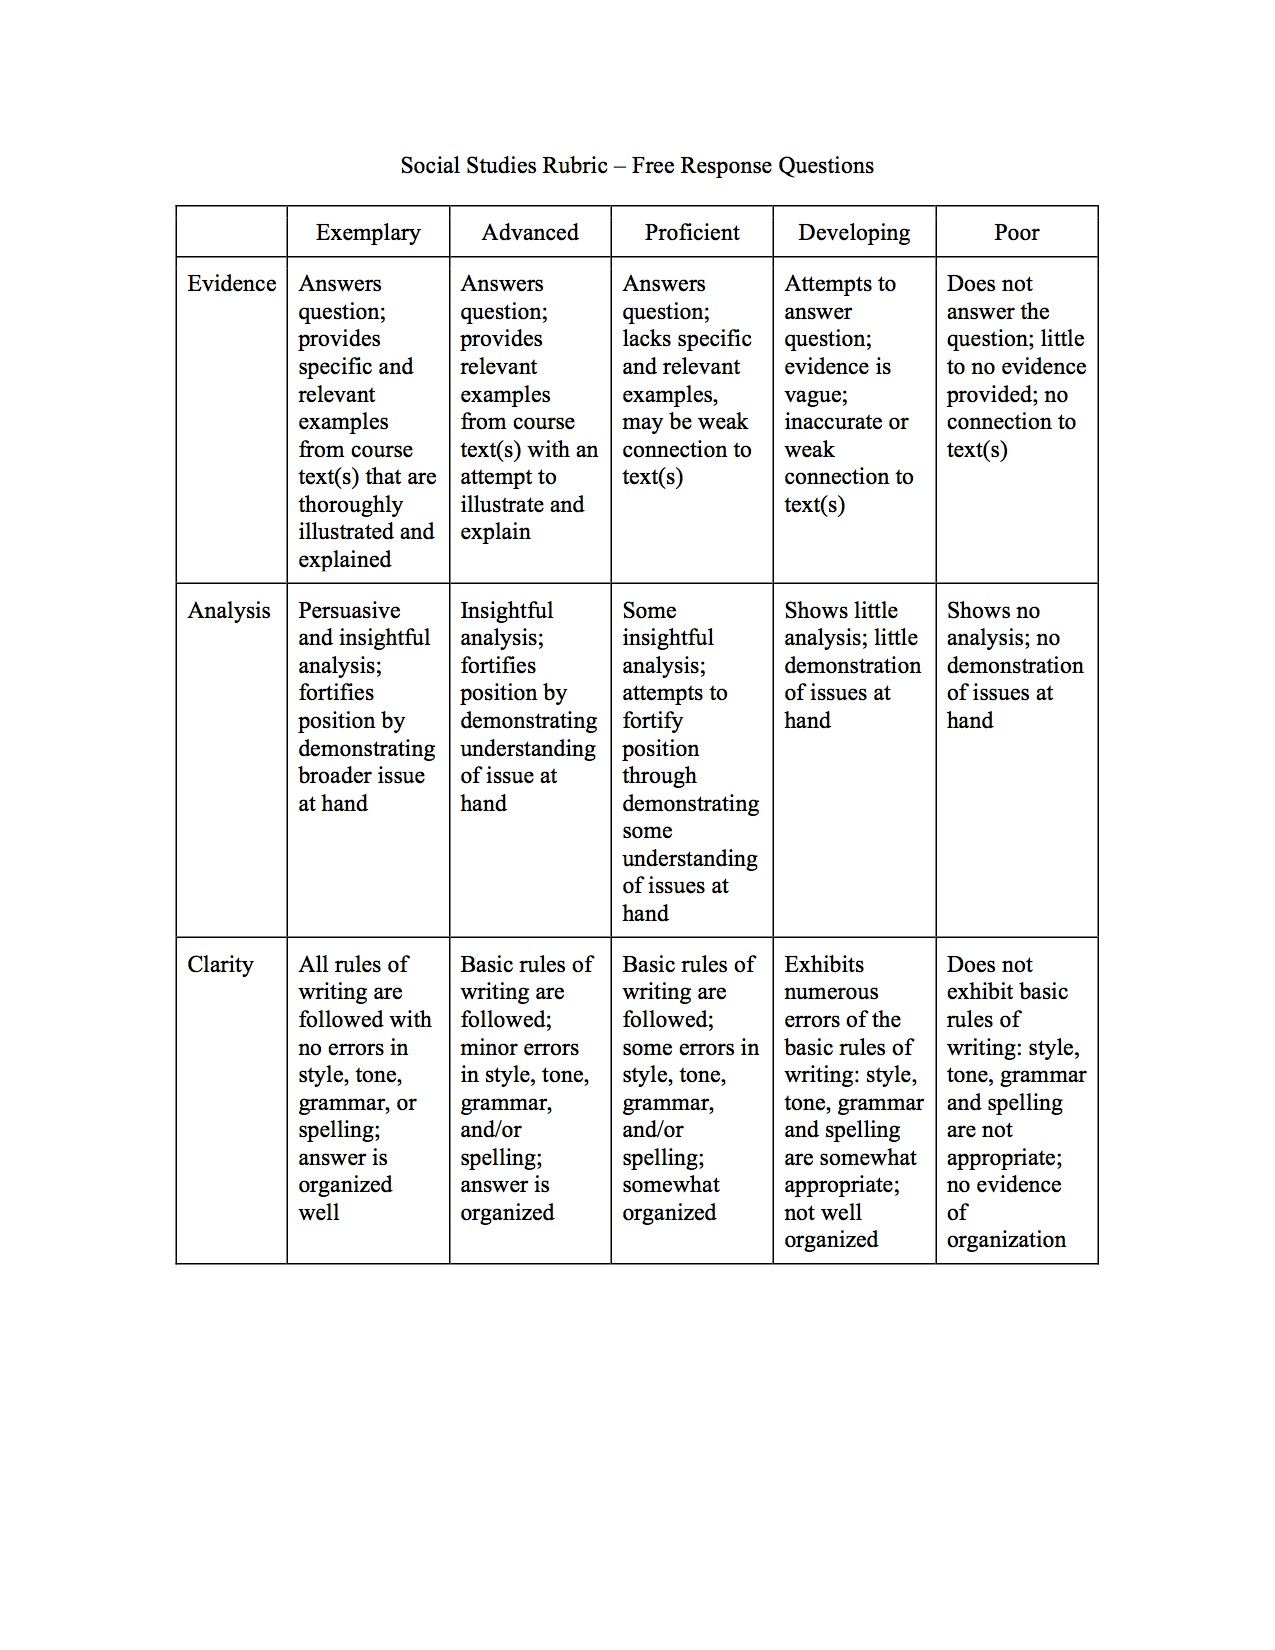 Short response writing across the curriculum rubric